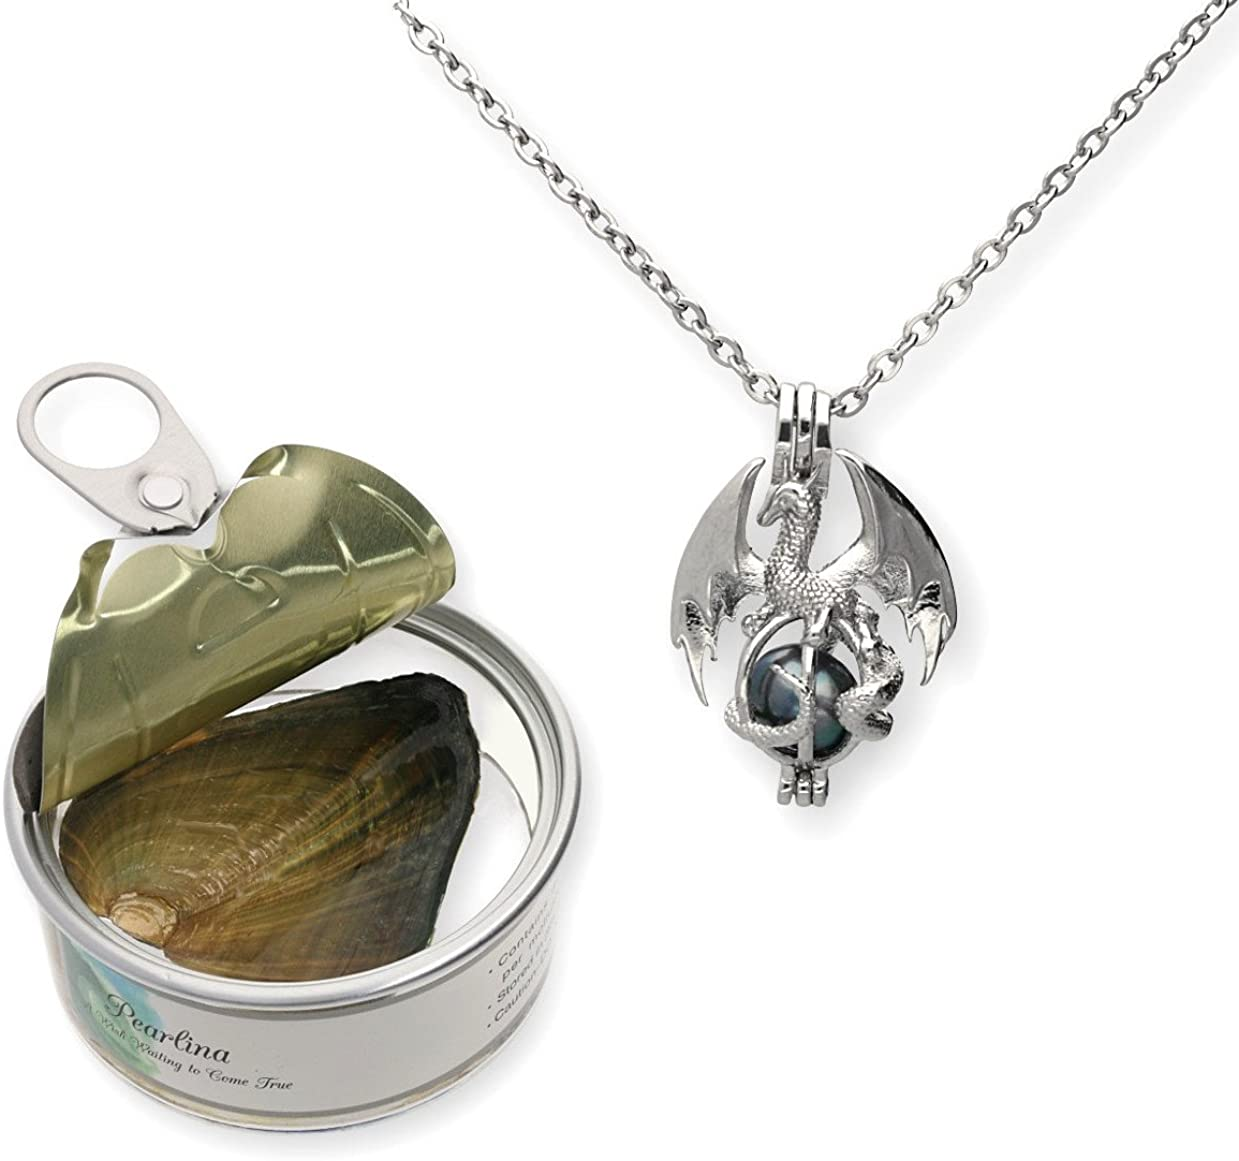 Pearlina Dragon Cultured Pearl in Oyster Necklace Set Silver tone Cage w/Stainless Steel Chain 18""